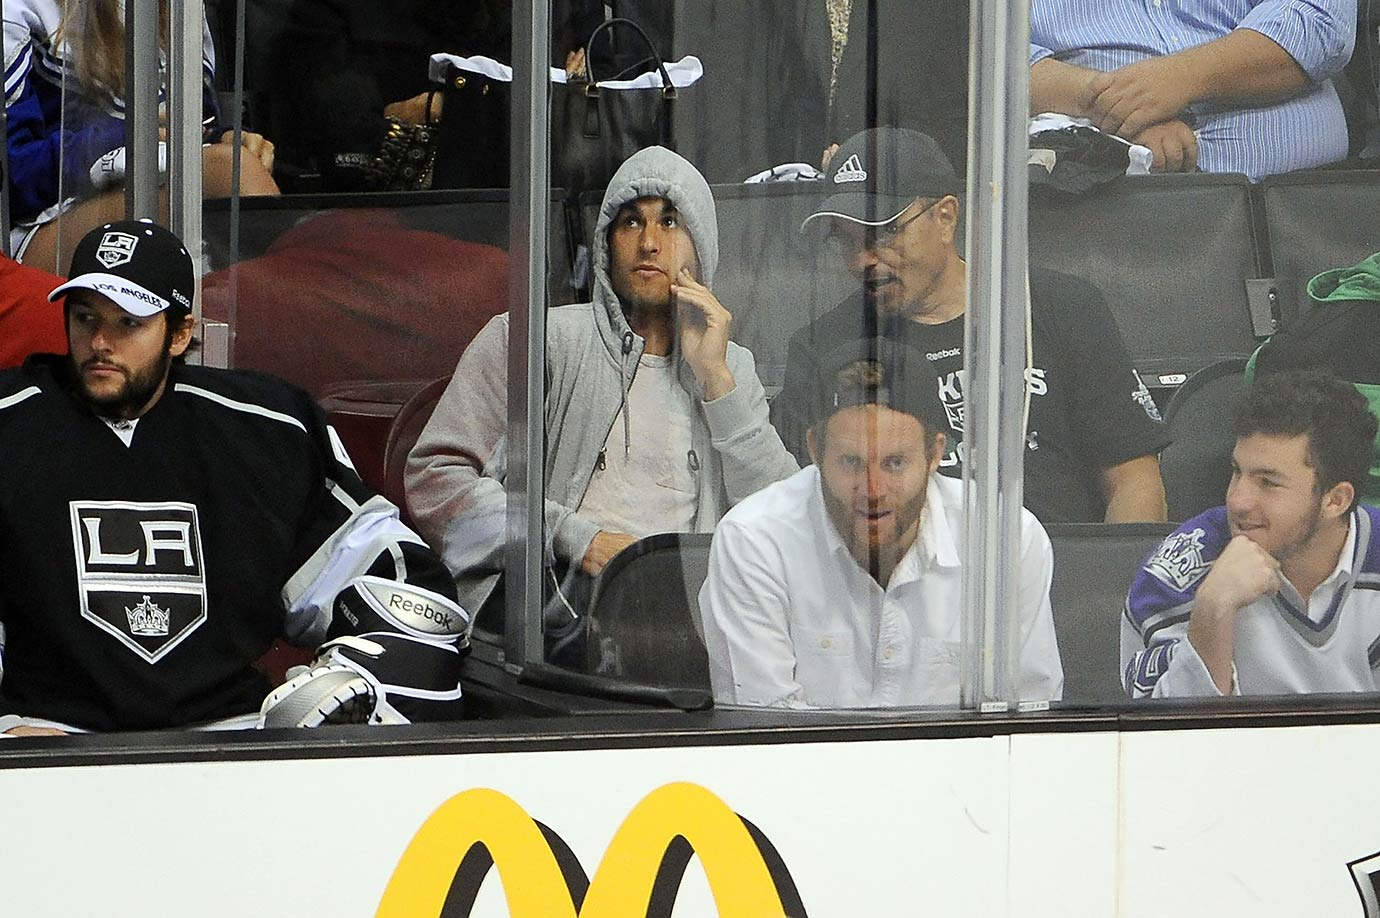 Landon Donovan watches the Los Angeles Kings and the St. Louis Blues in Game 4 of the Western Conference semifinals during the 2012 Stanley Cup Playoffs at the Staples Center in Los Angeles.